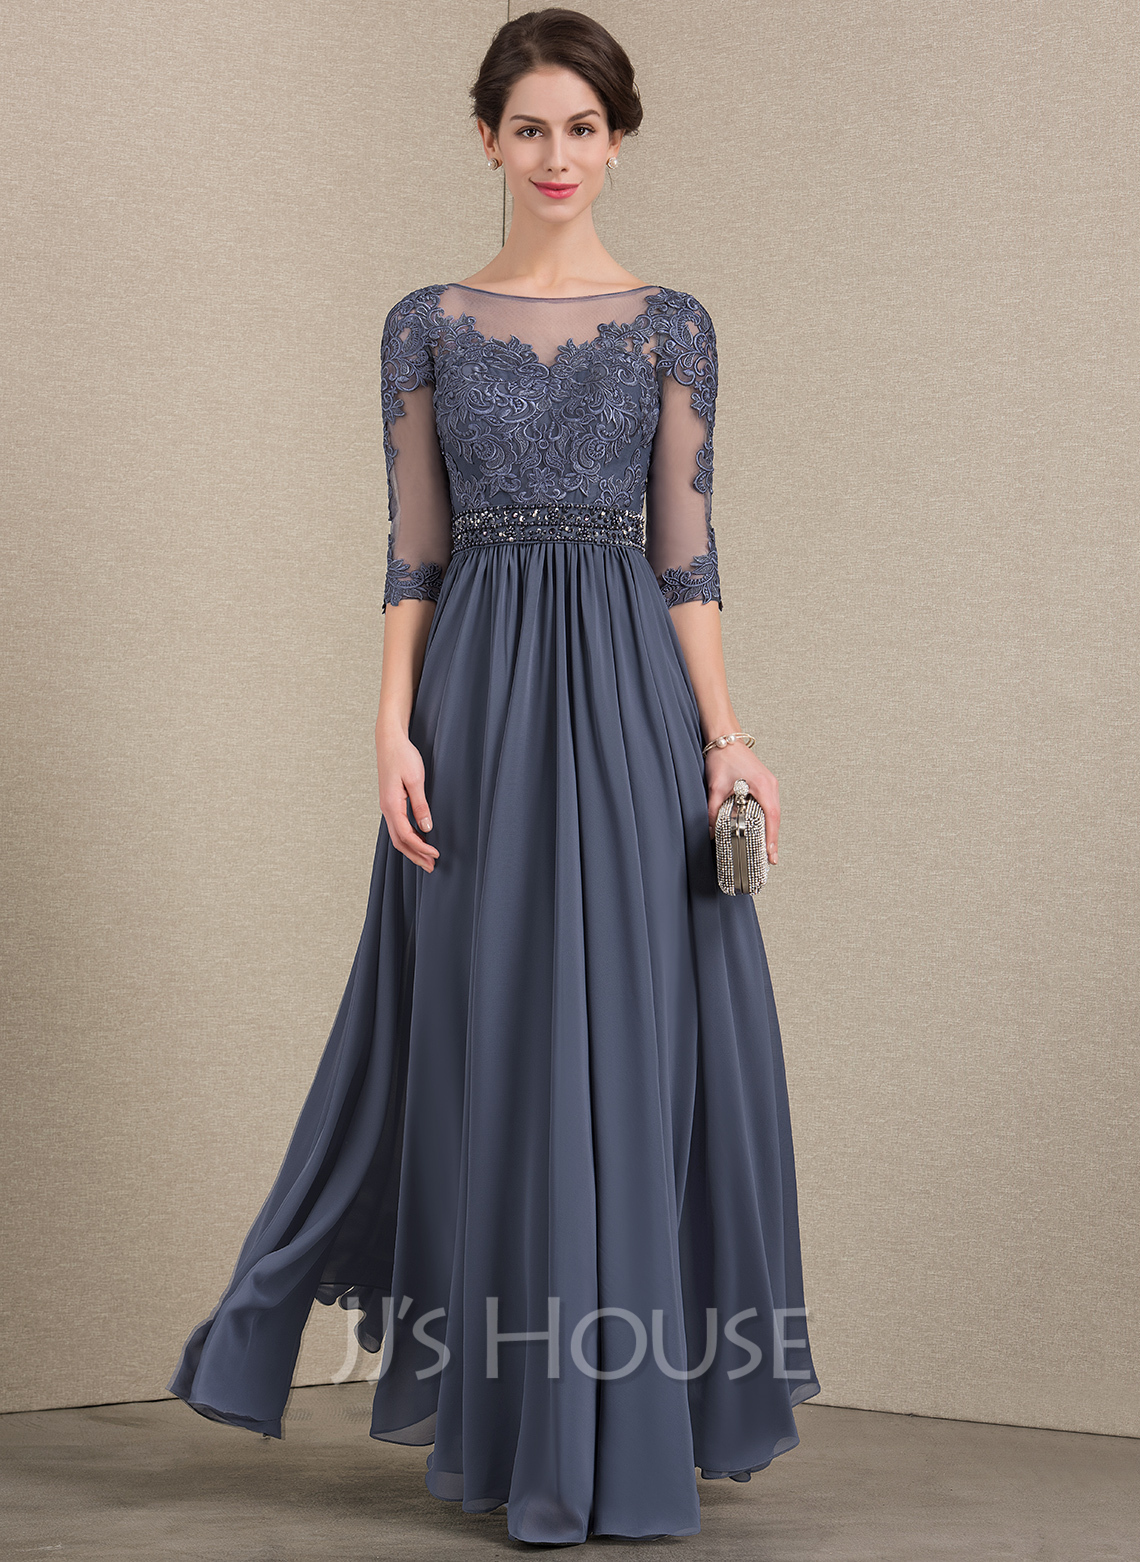 7f7af94fe4 A-Line/Princess Scoop Neck Floor-Length Chiffon Lace Mother of the Bride. Loading  zoom